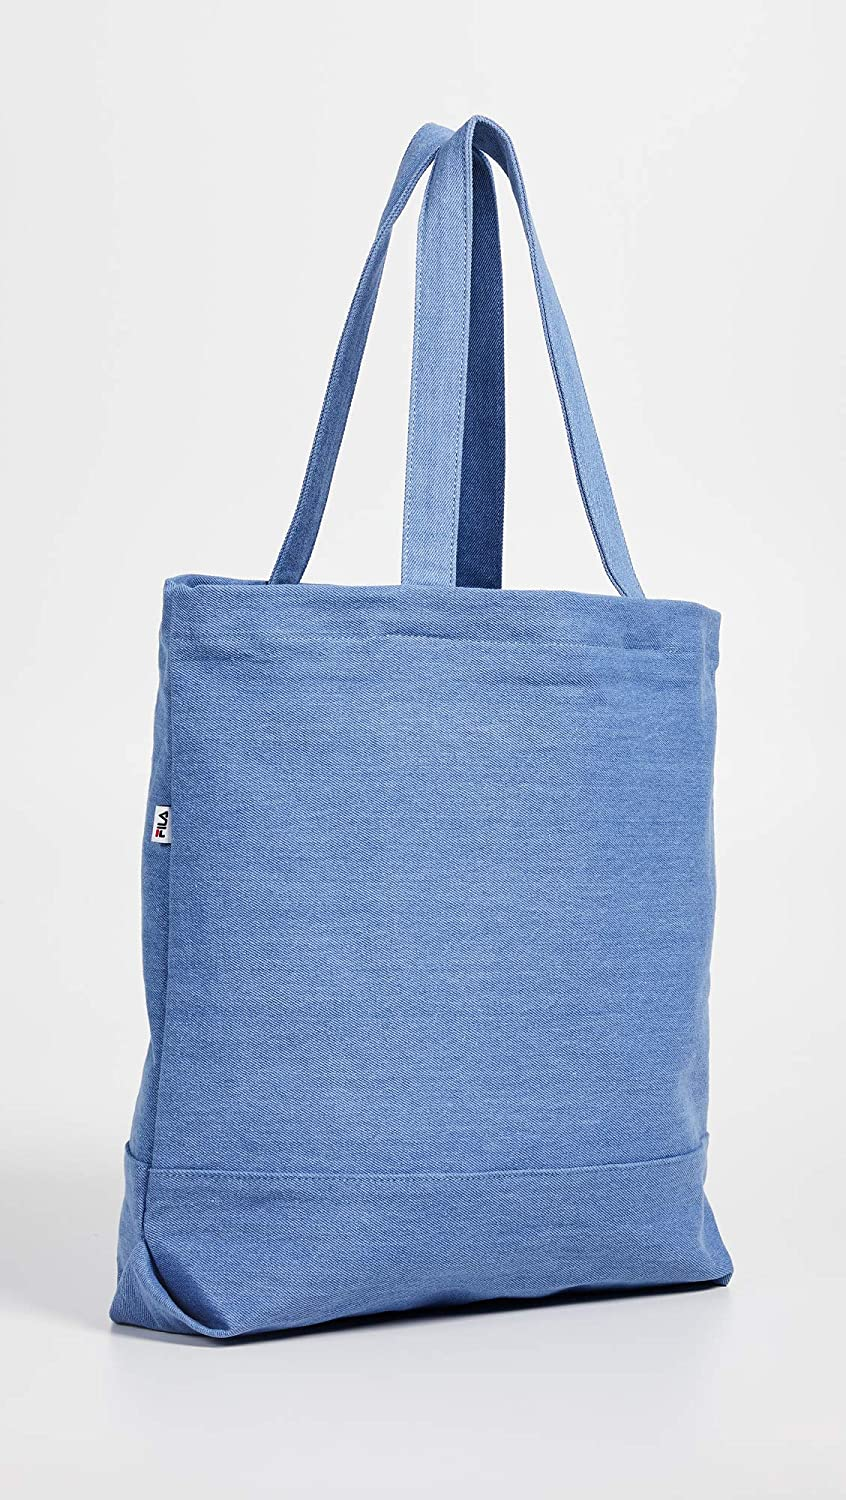 b2a972fa63 Amazon.com  Fila Women s Canvas Tote